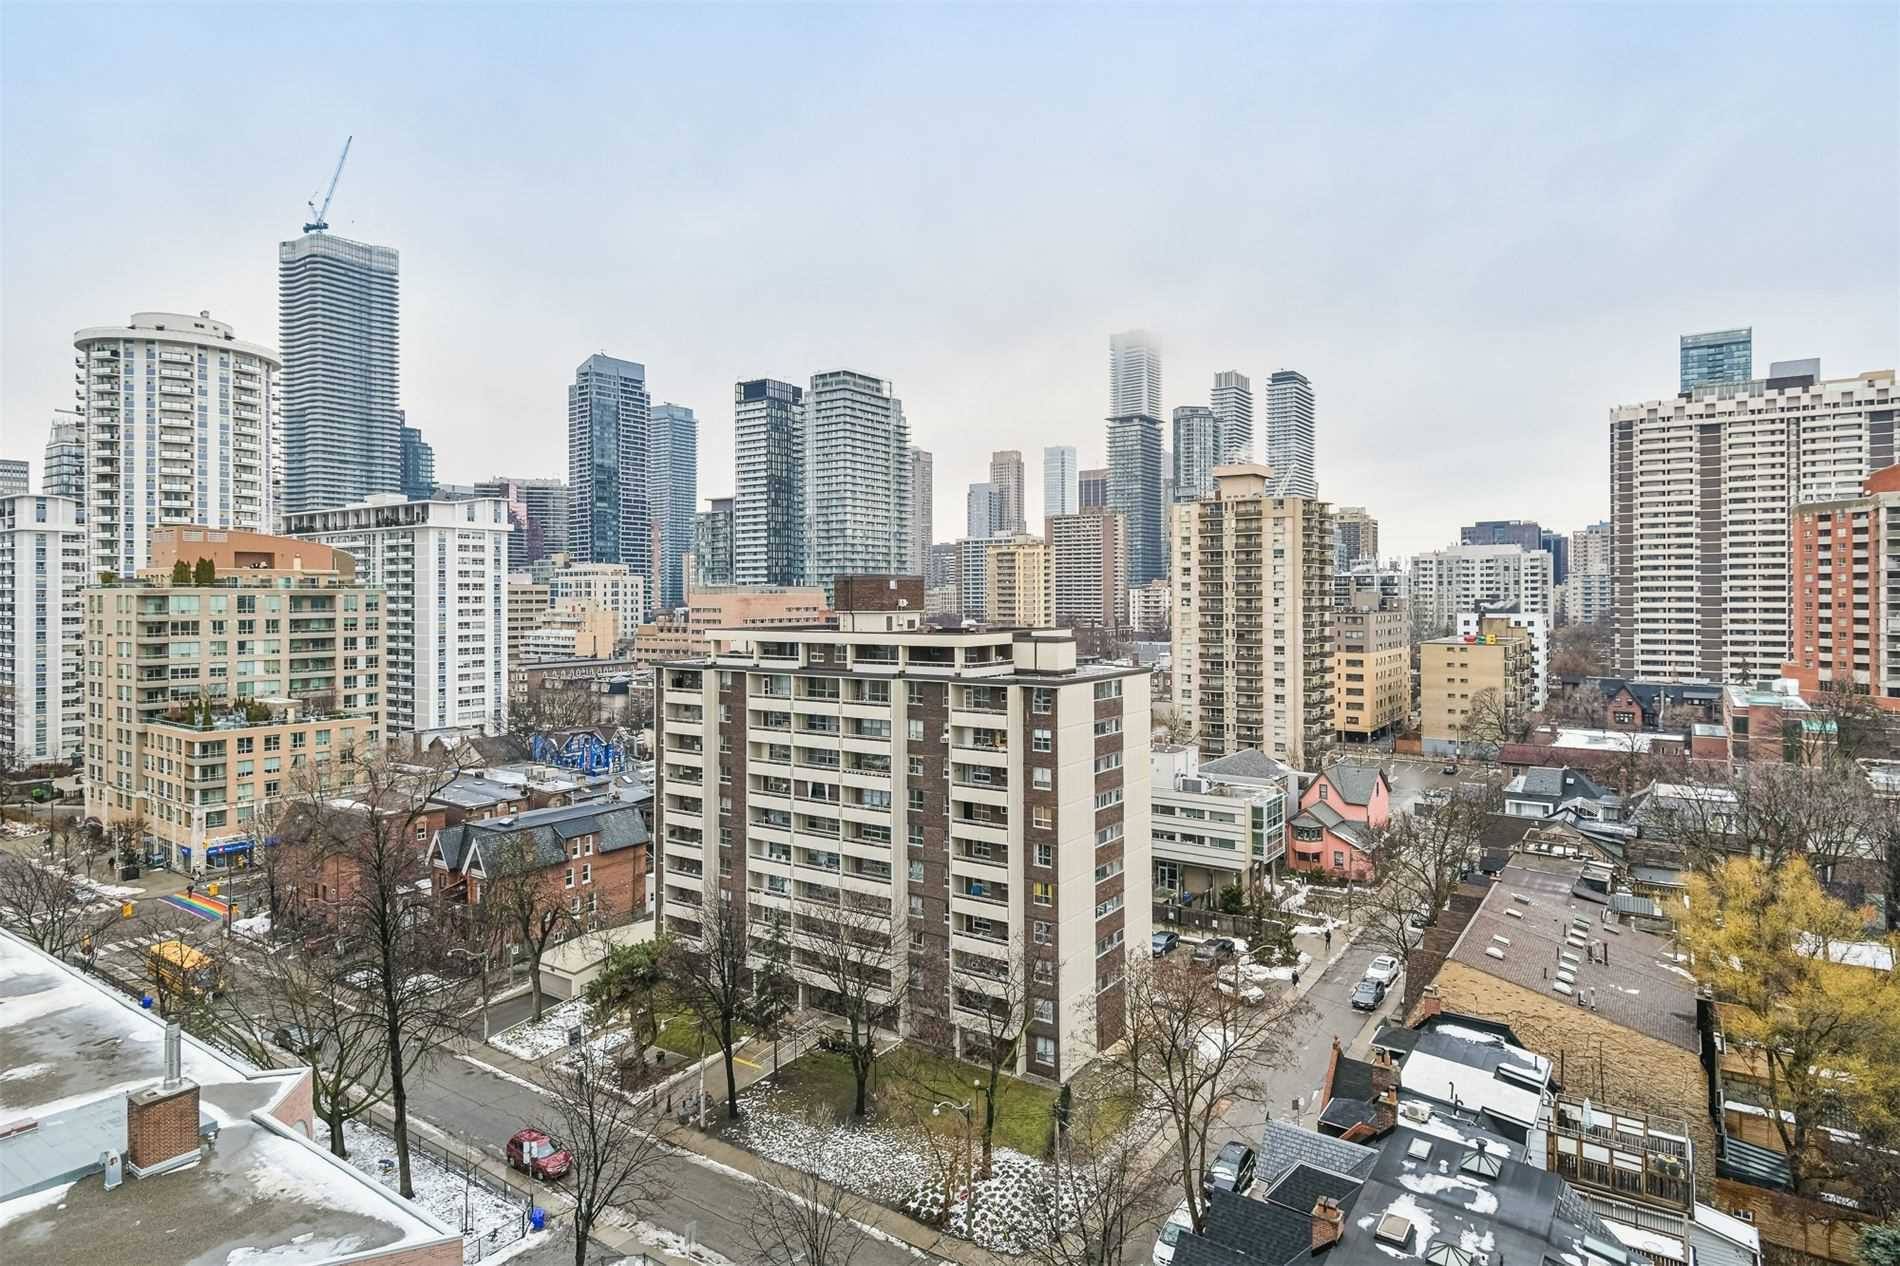 Photo 16: Photos: 1203 285 Mutual Street in Toronto: Church-Yonge Corridor Condo for sale (Toronto C08)  : MLS®# C4707981